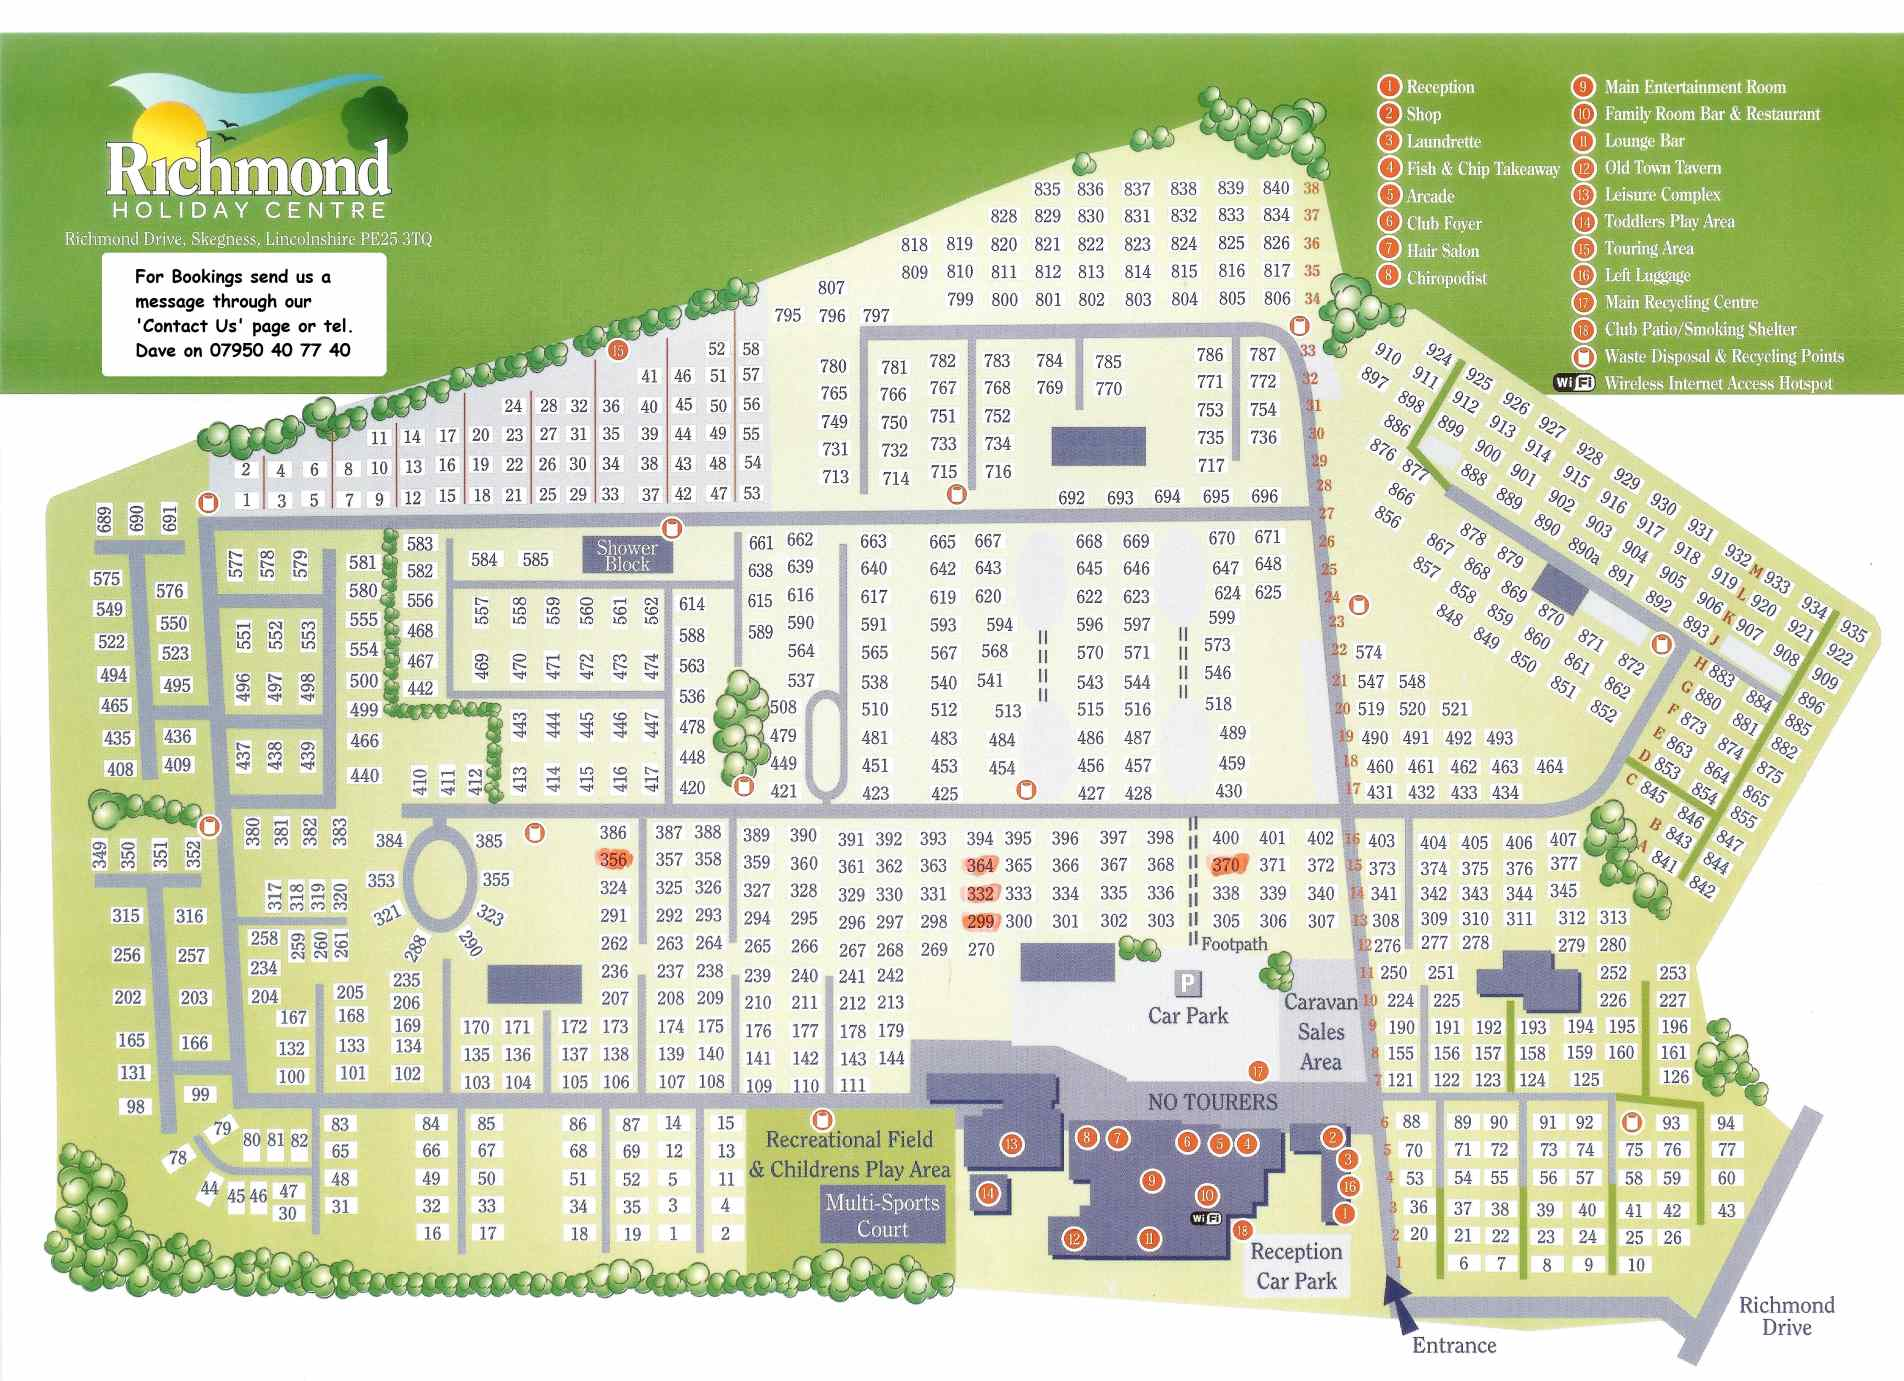 map of our caravans for hire at the Richmond Holiday Centre in Skegness